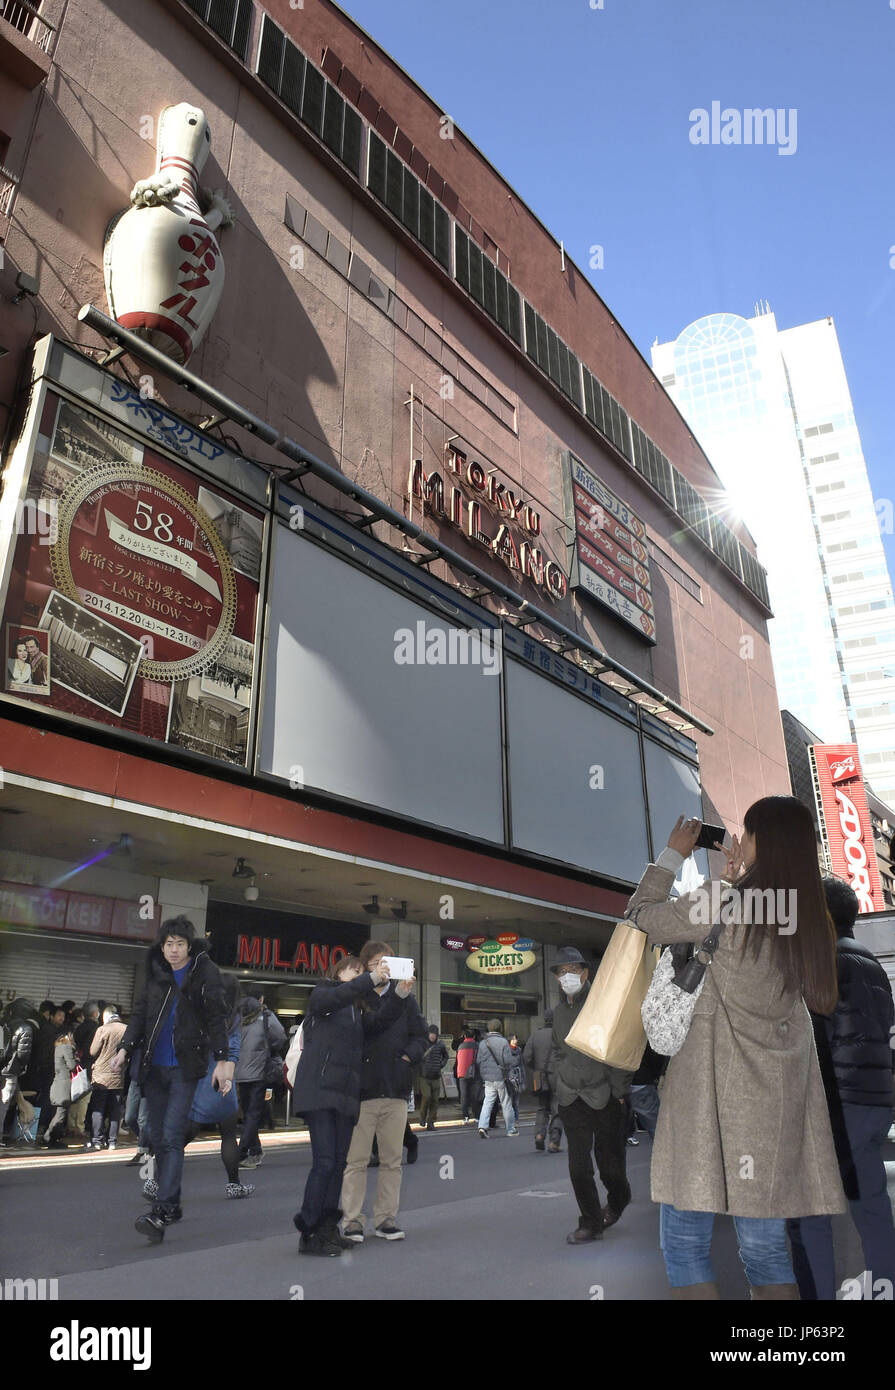 Tokyo Japan Photo Shows The Shinjuku Milano Za Movie Theater In Stock Photo Alamy